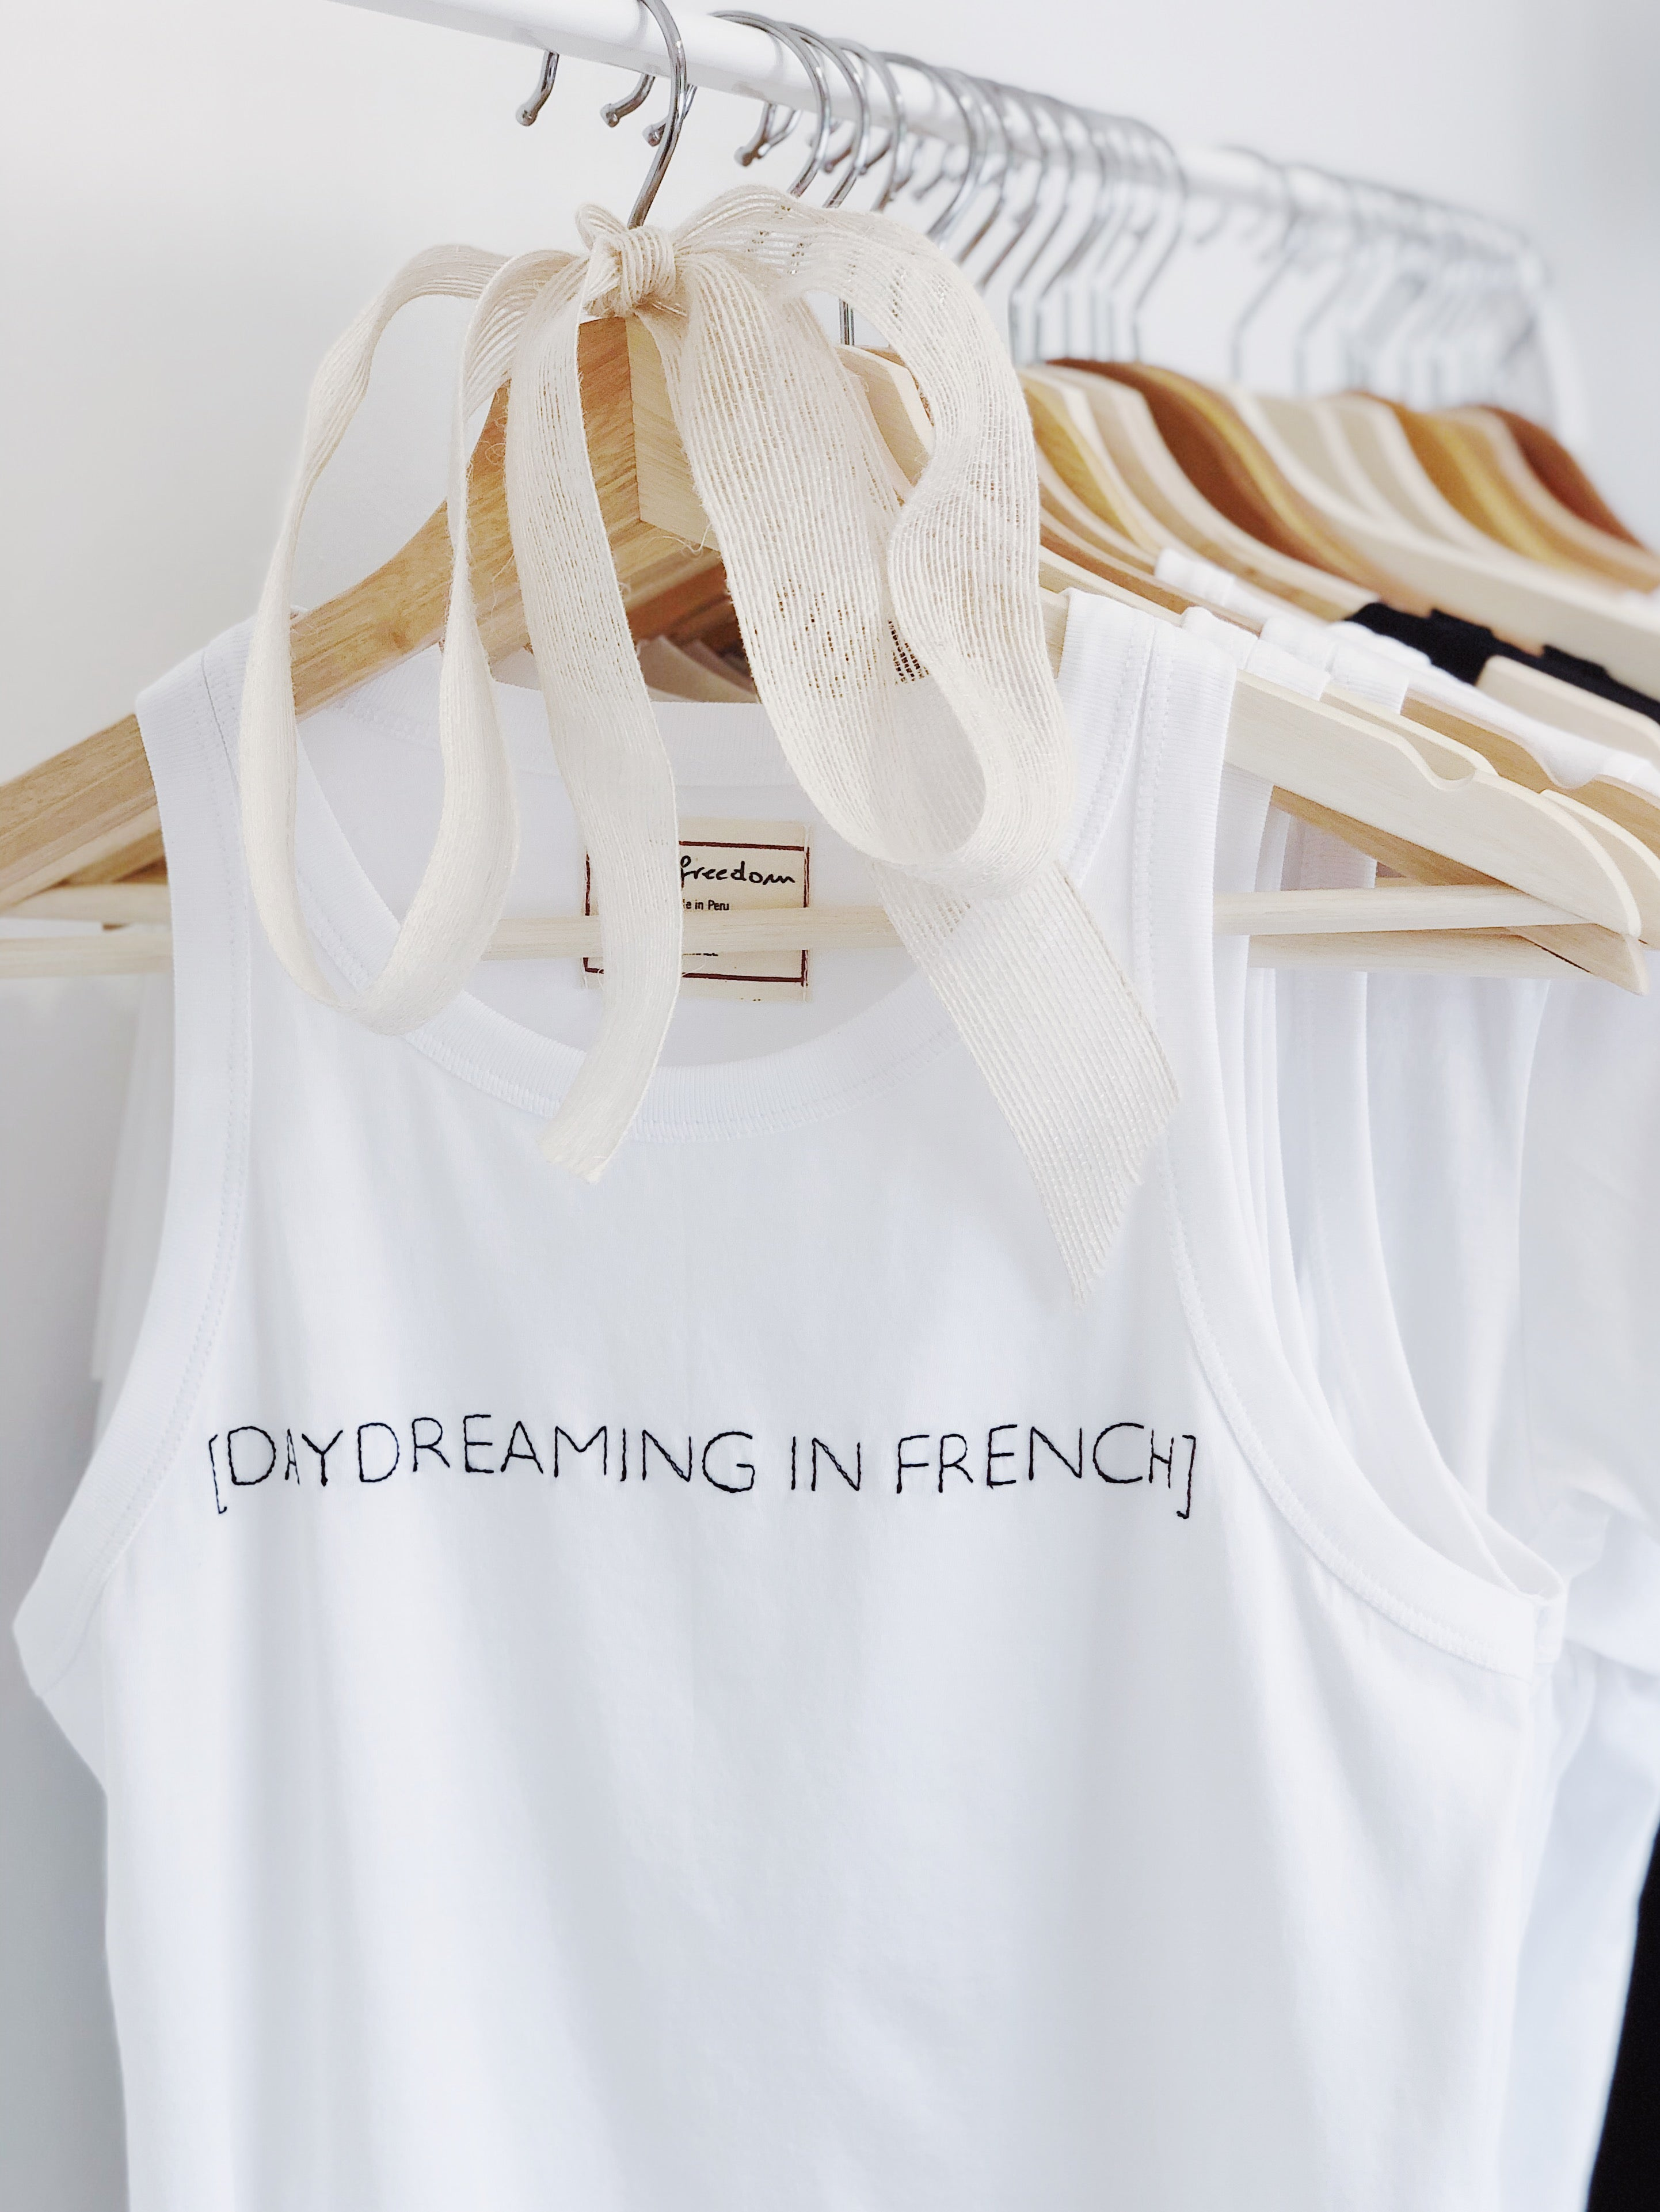 Daydreaming in French, Tank Top